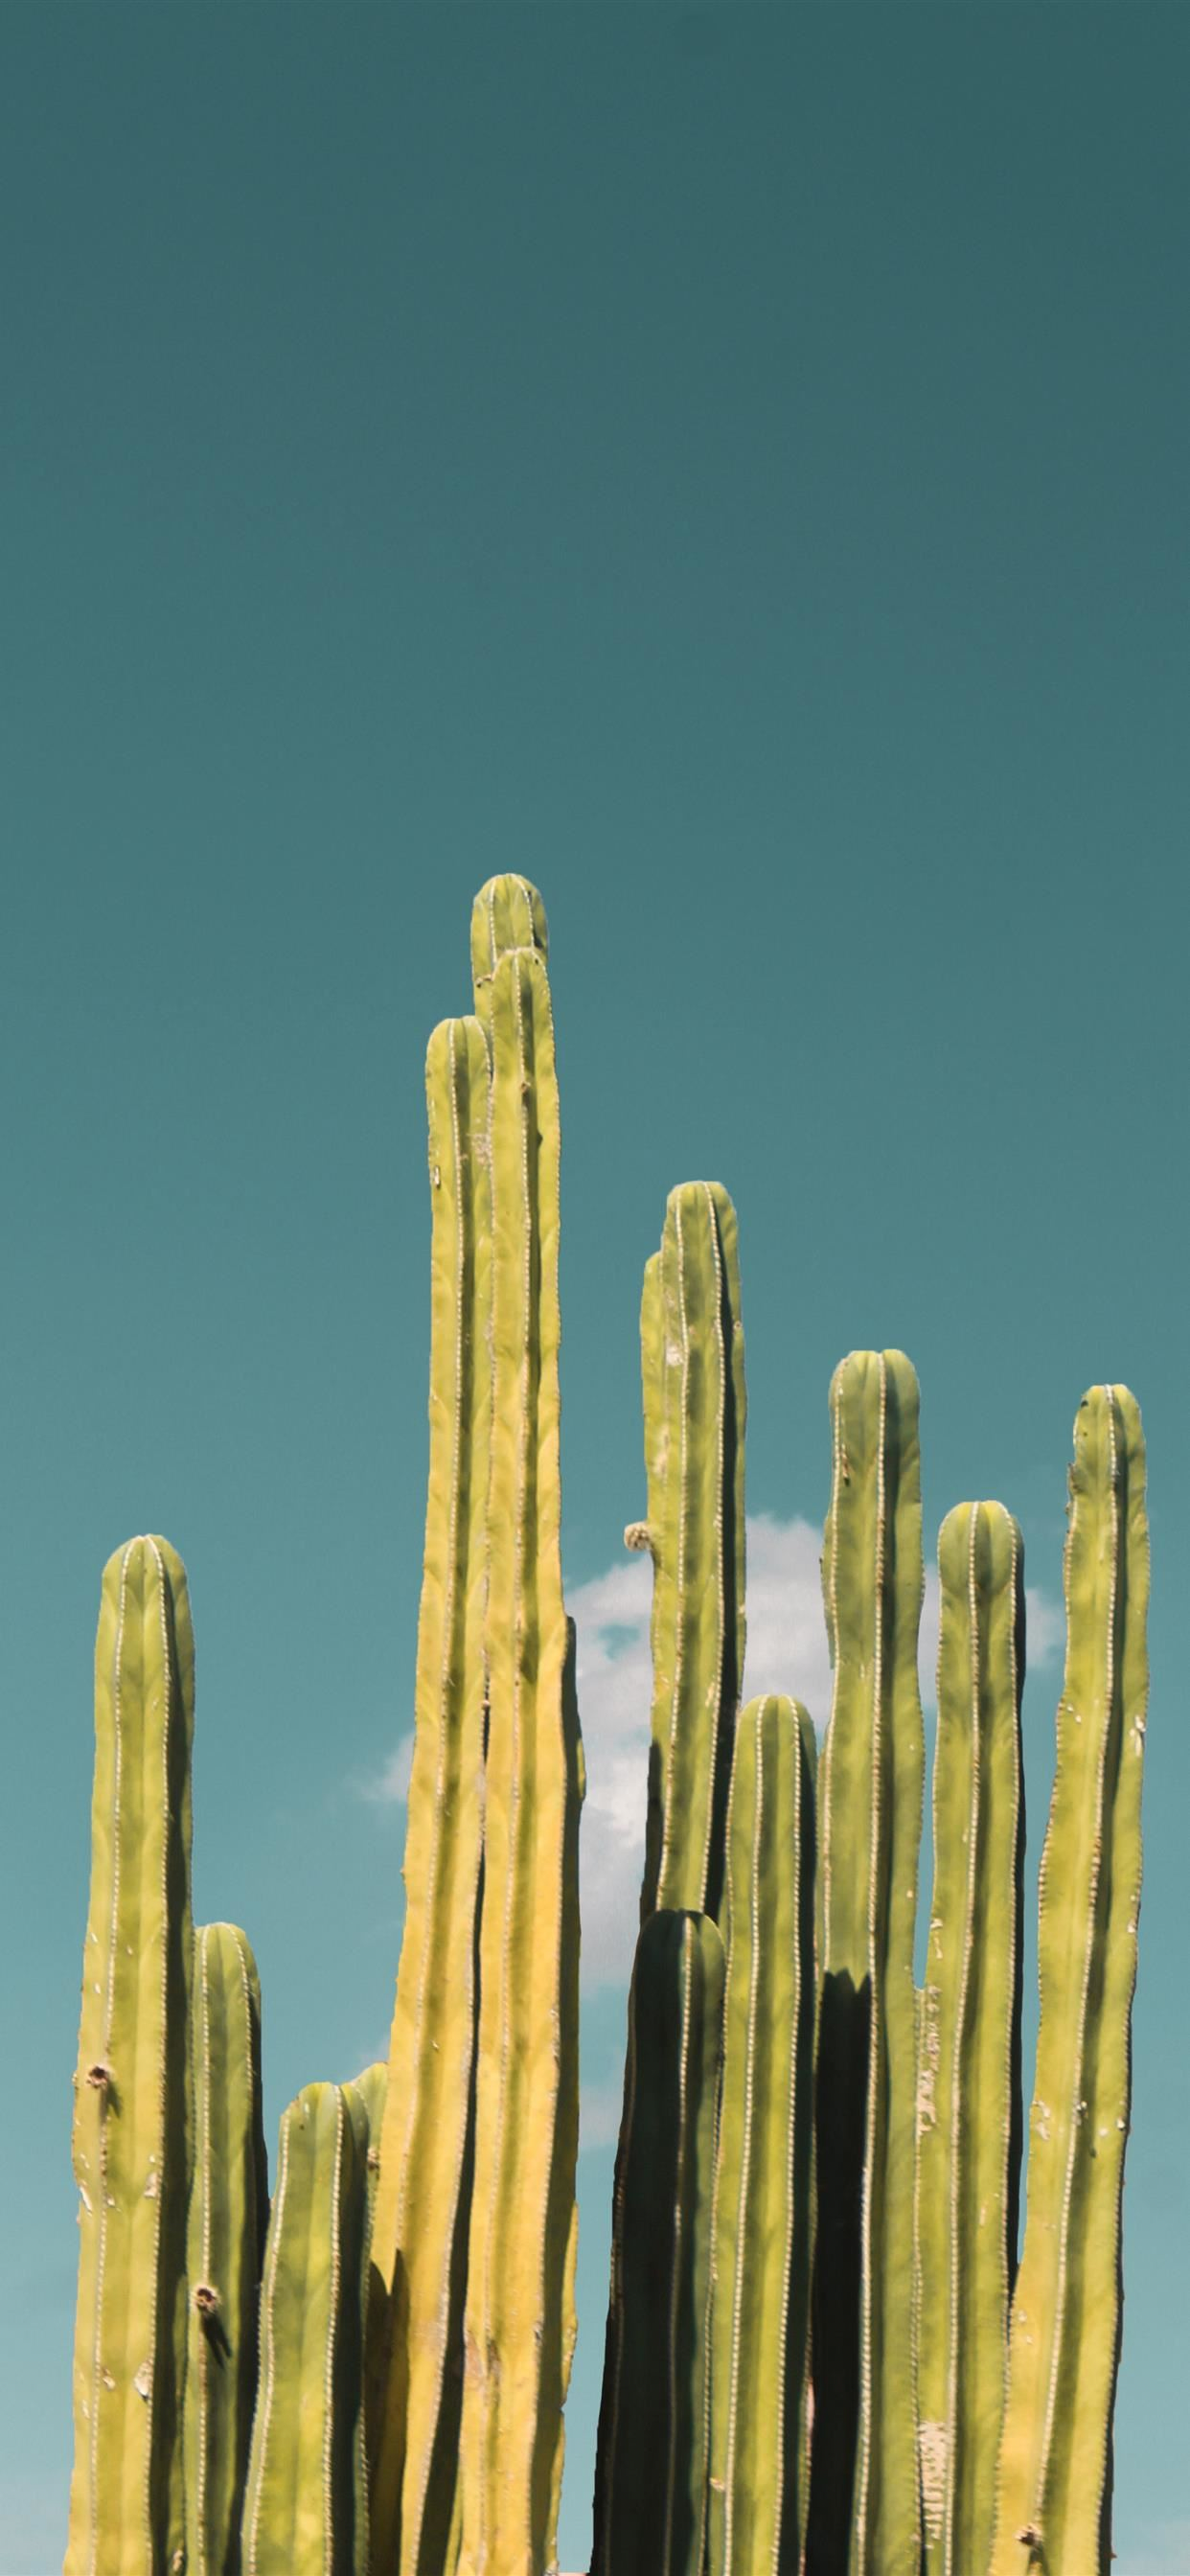 Cactus Iphone X Wallpaper Download Iphone Wallpapers Ipad